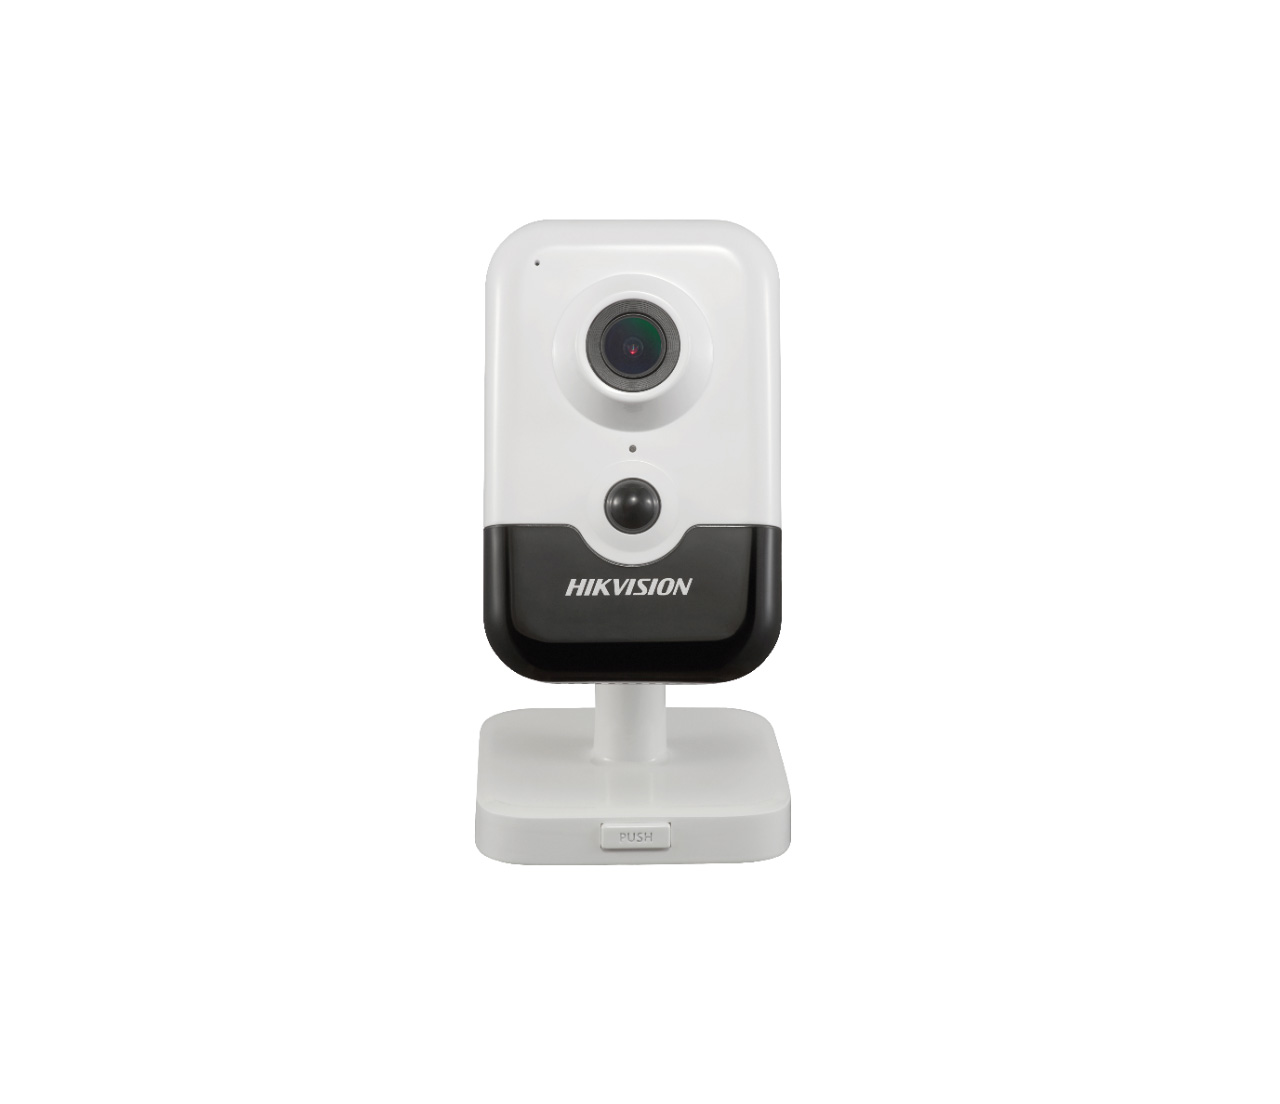 Hikvision DS-2CD2423G0-IW(2.8mm)(W)